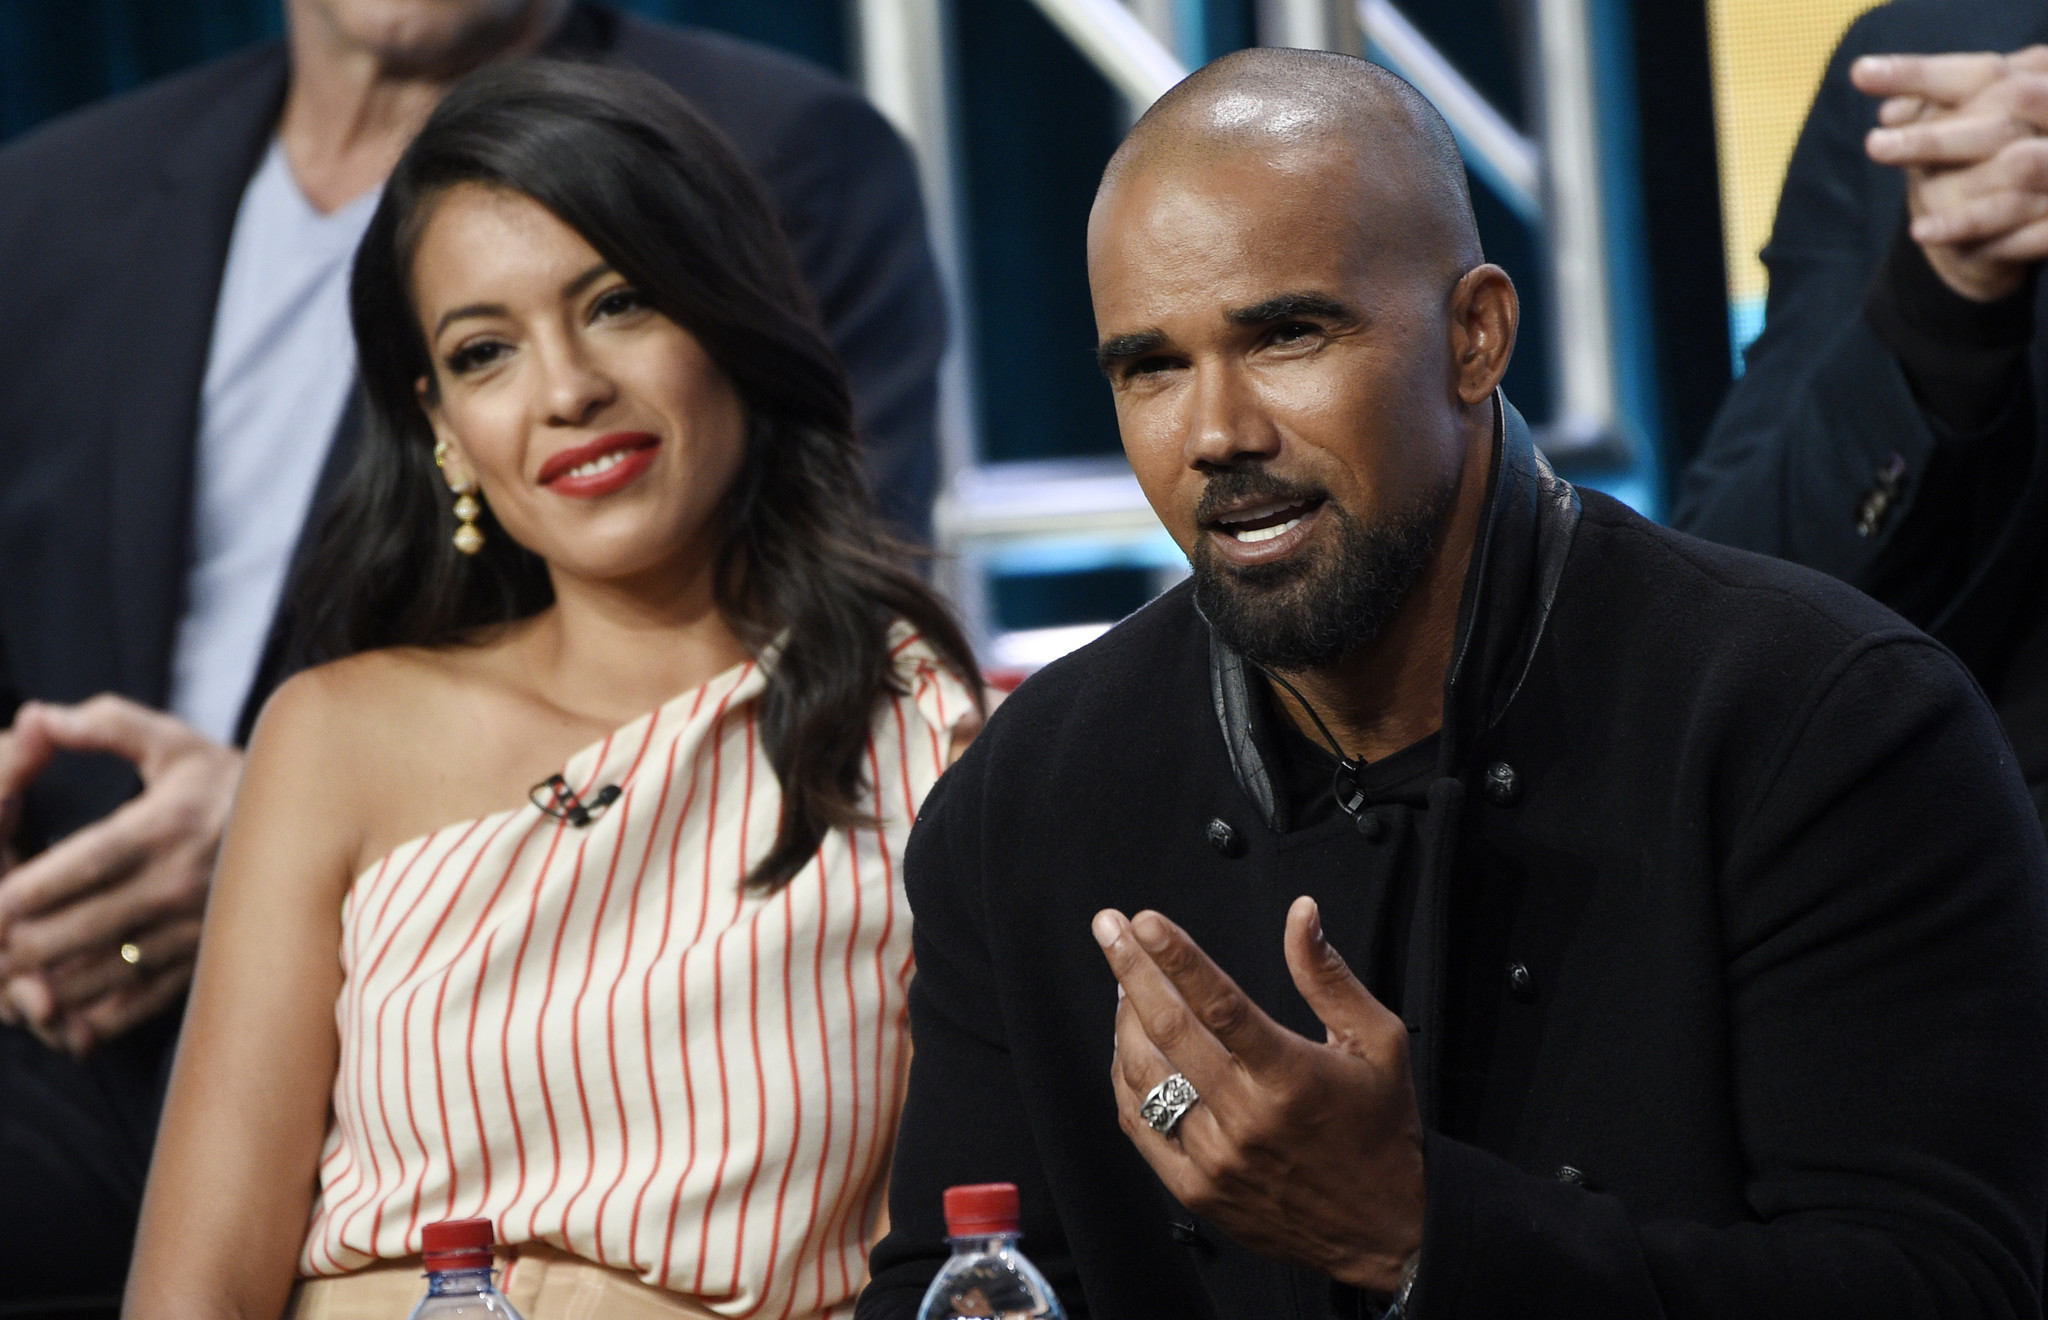 Stephanie Sigman and Shemar Moore (Chris Pizzello/Invision/AP)